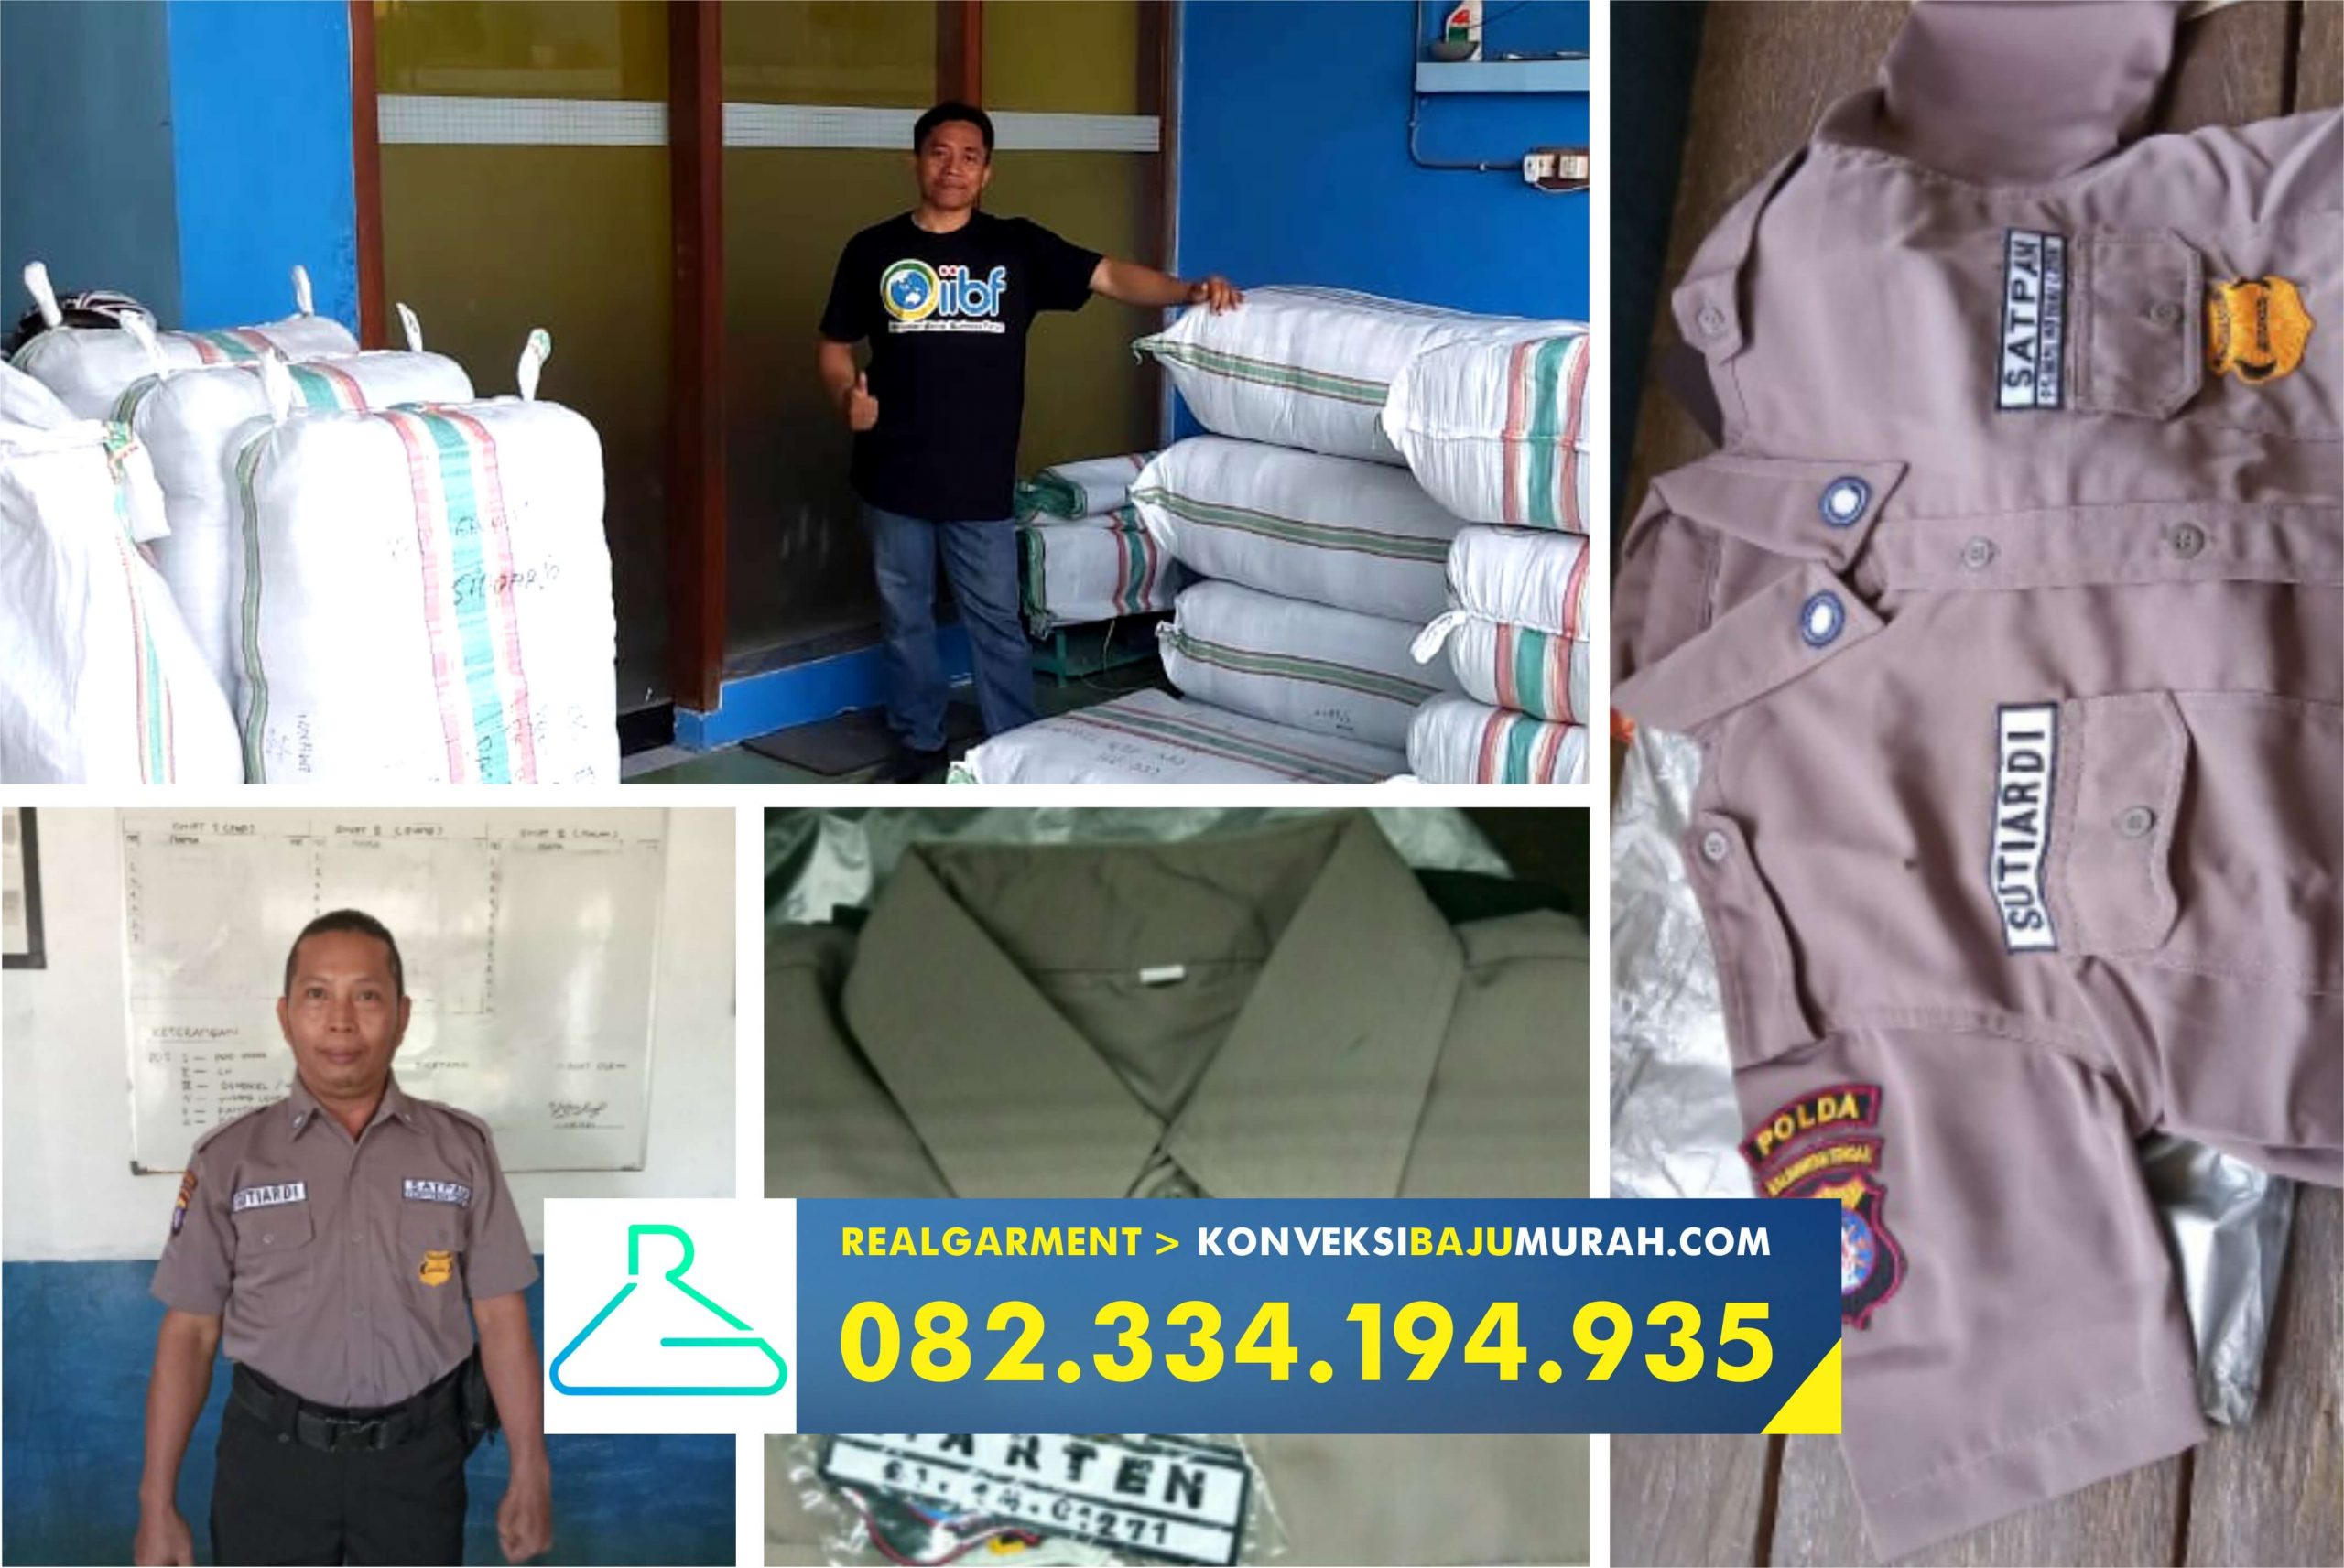 supplier seragam security, penjahit seragam security, pabrik seragam security, paket seragam security